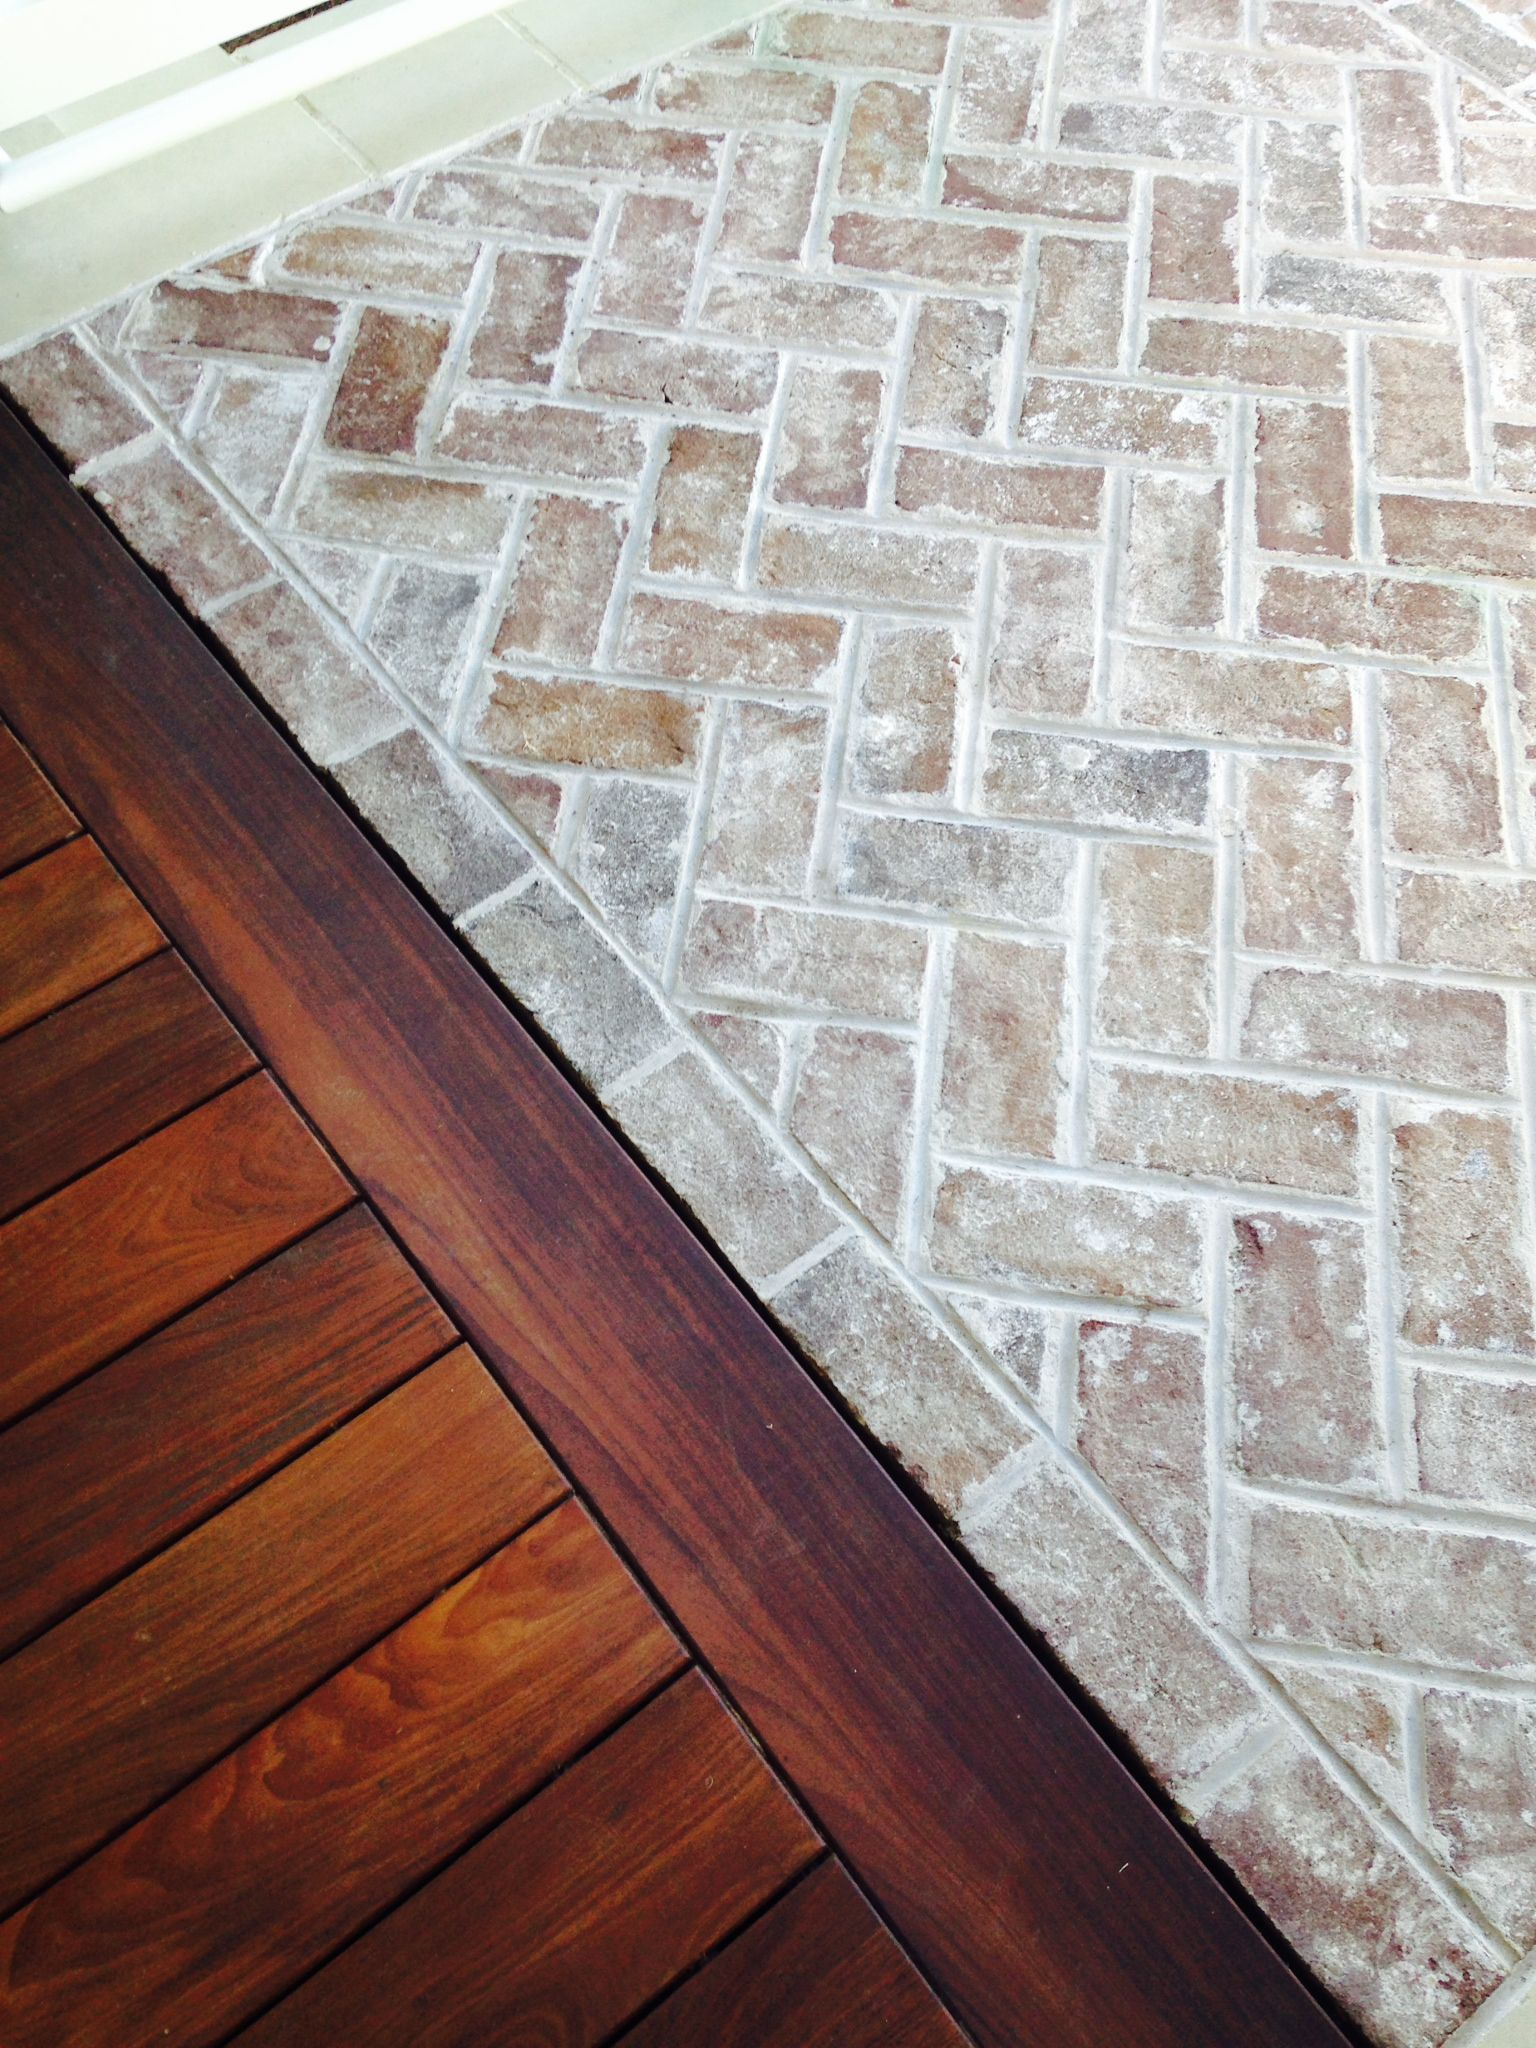 Brick Flooring In Kitchen Savannah Grey Thin Handmade Bricks For Flooring At Sea Pines